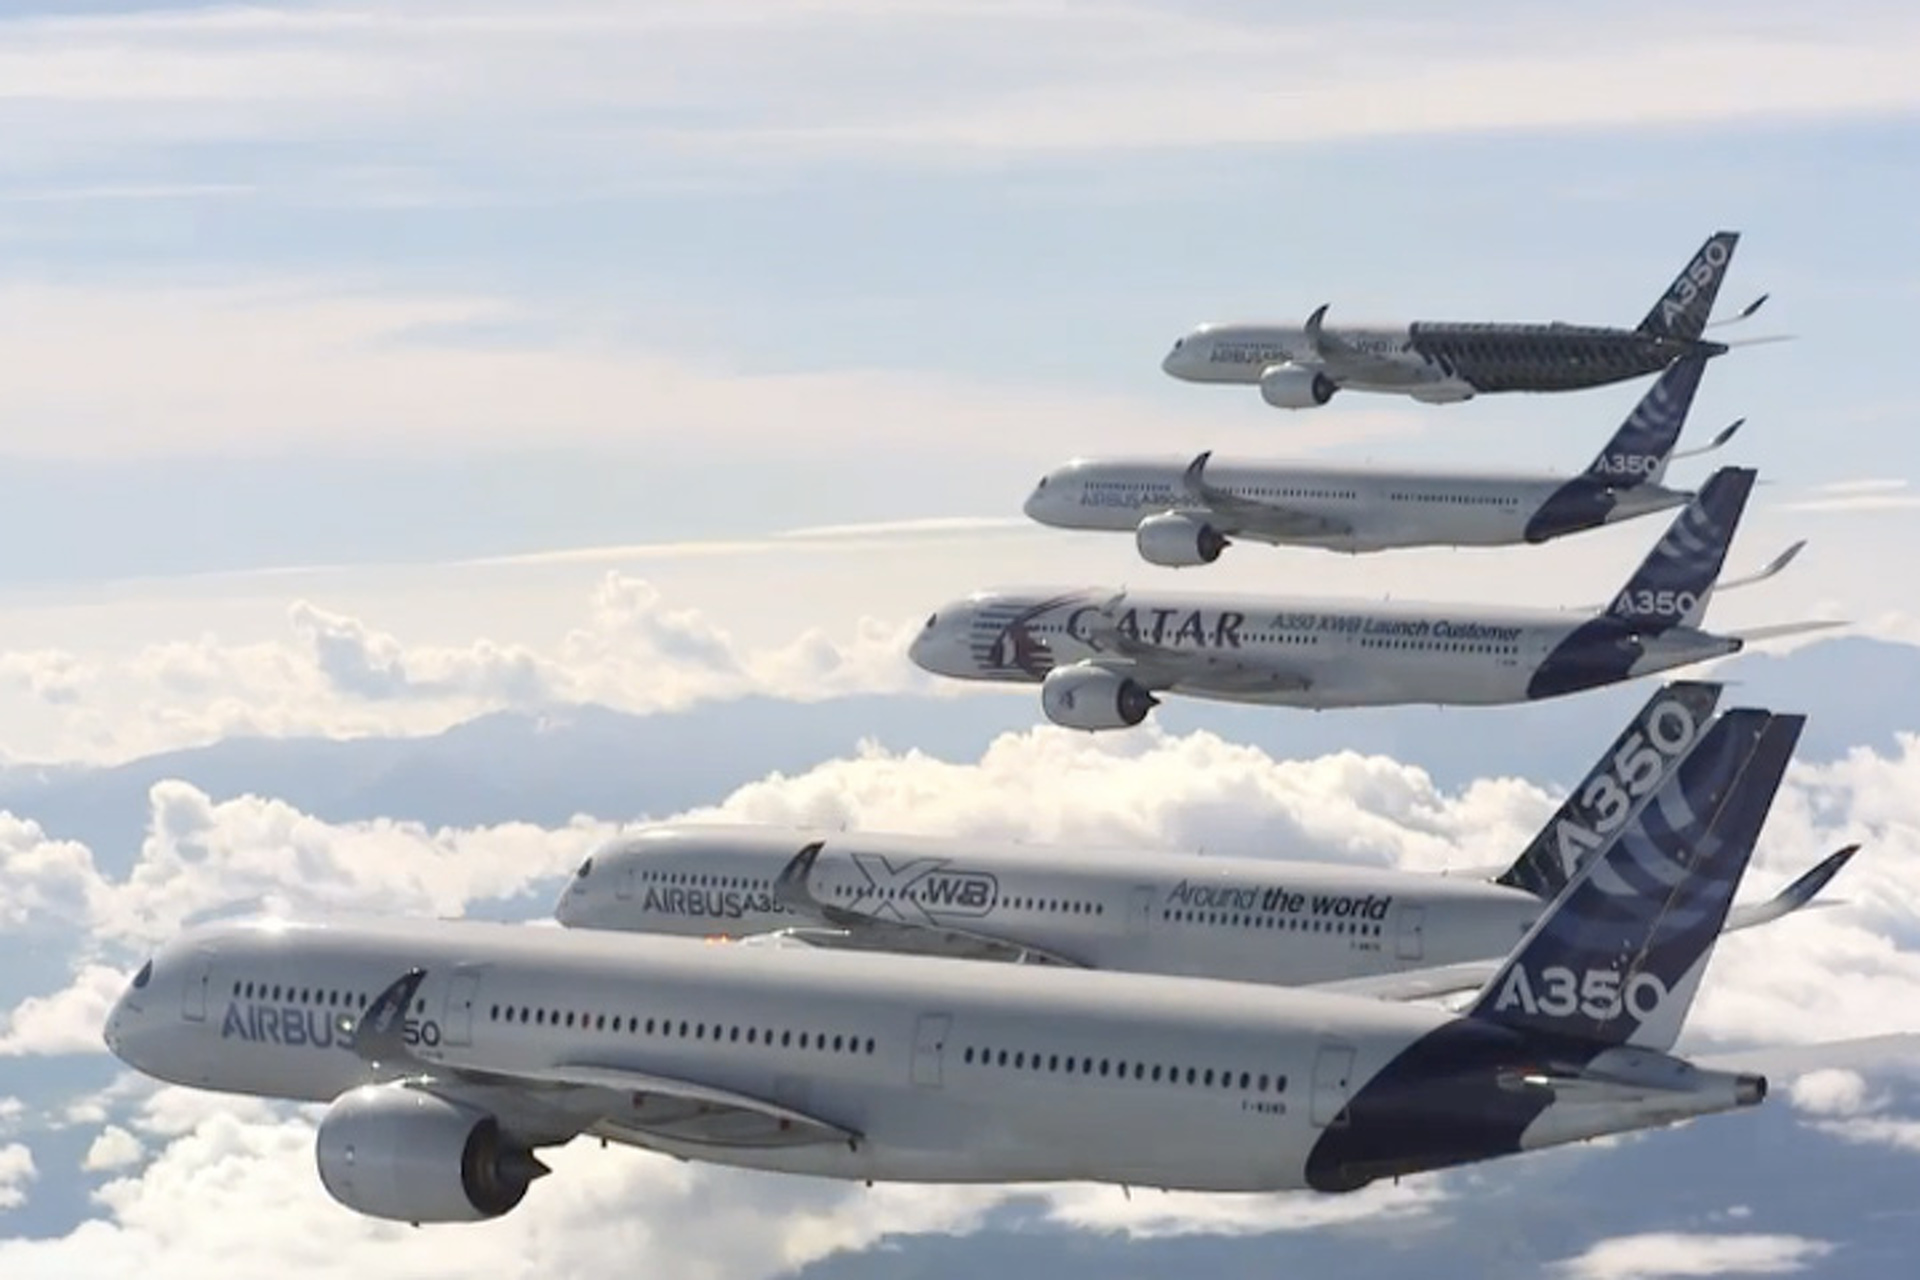 Watch Five Huge Airbus A350s Perform Stunt Formations